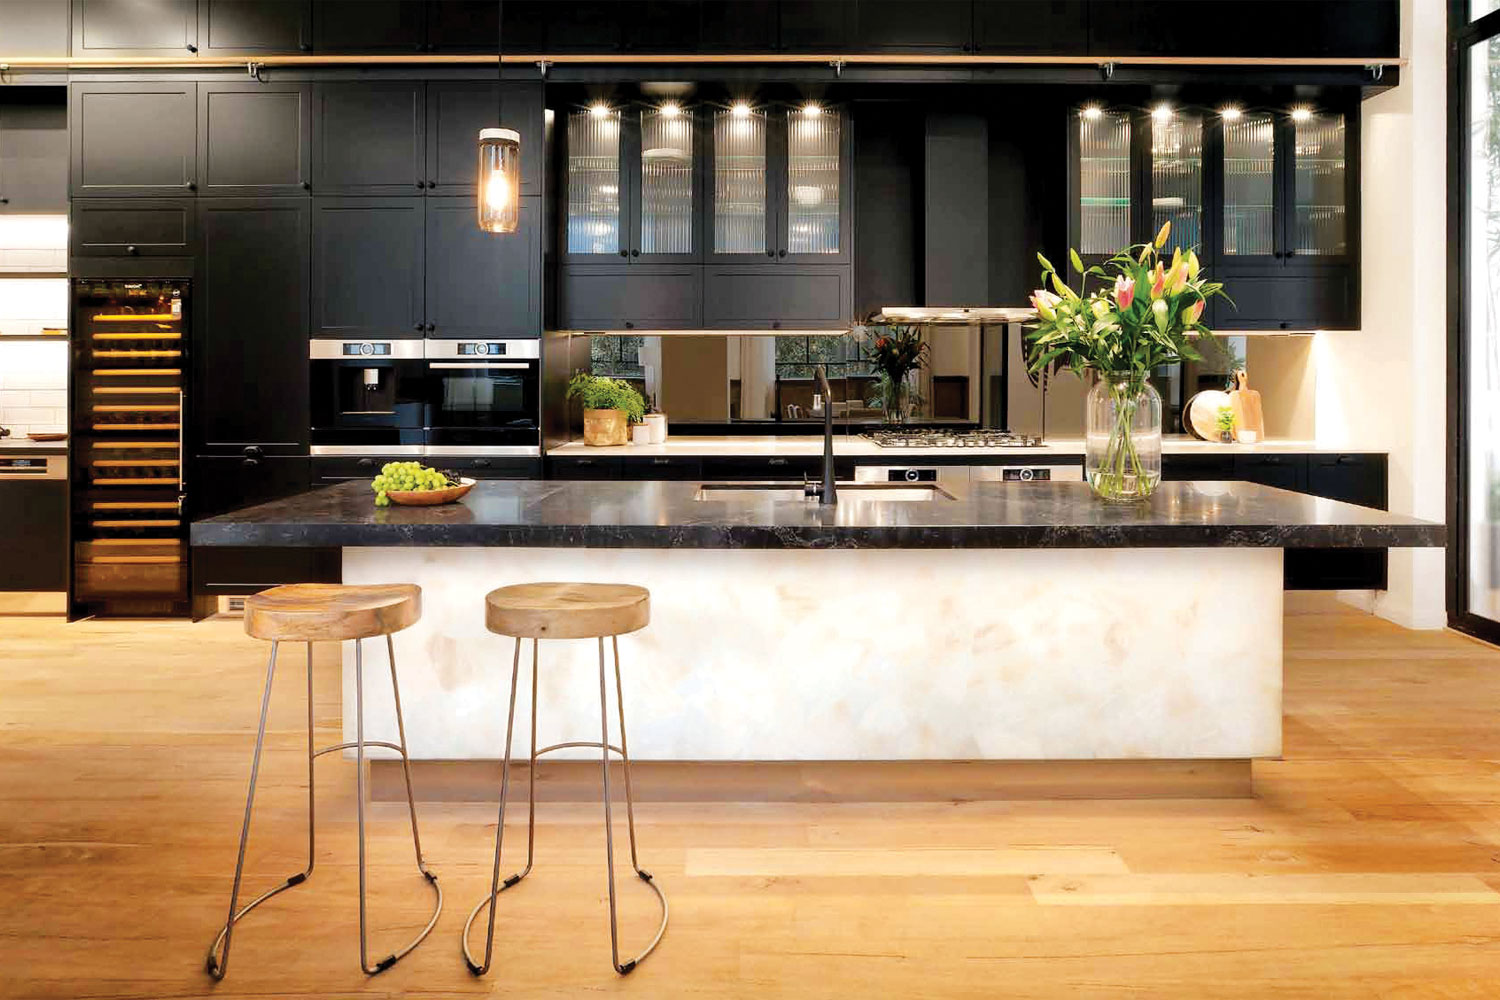 9 quality kitchen designs: 2. Top of The Block